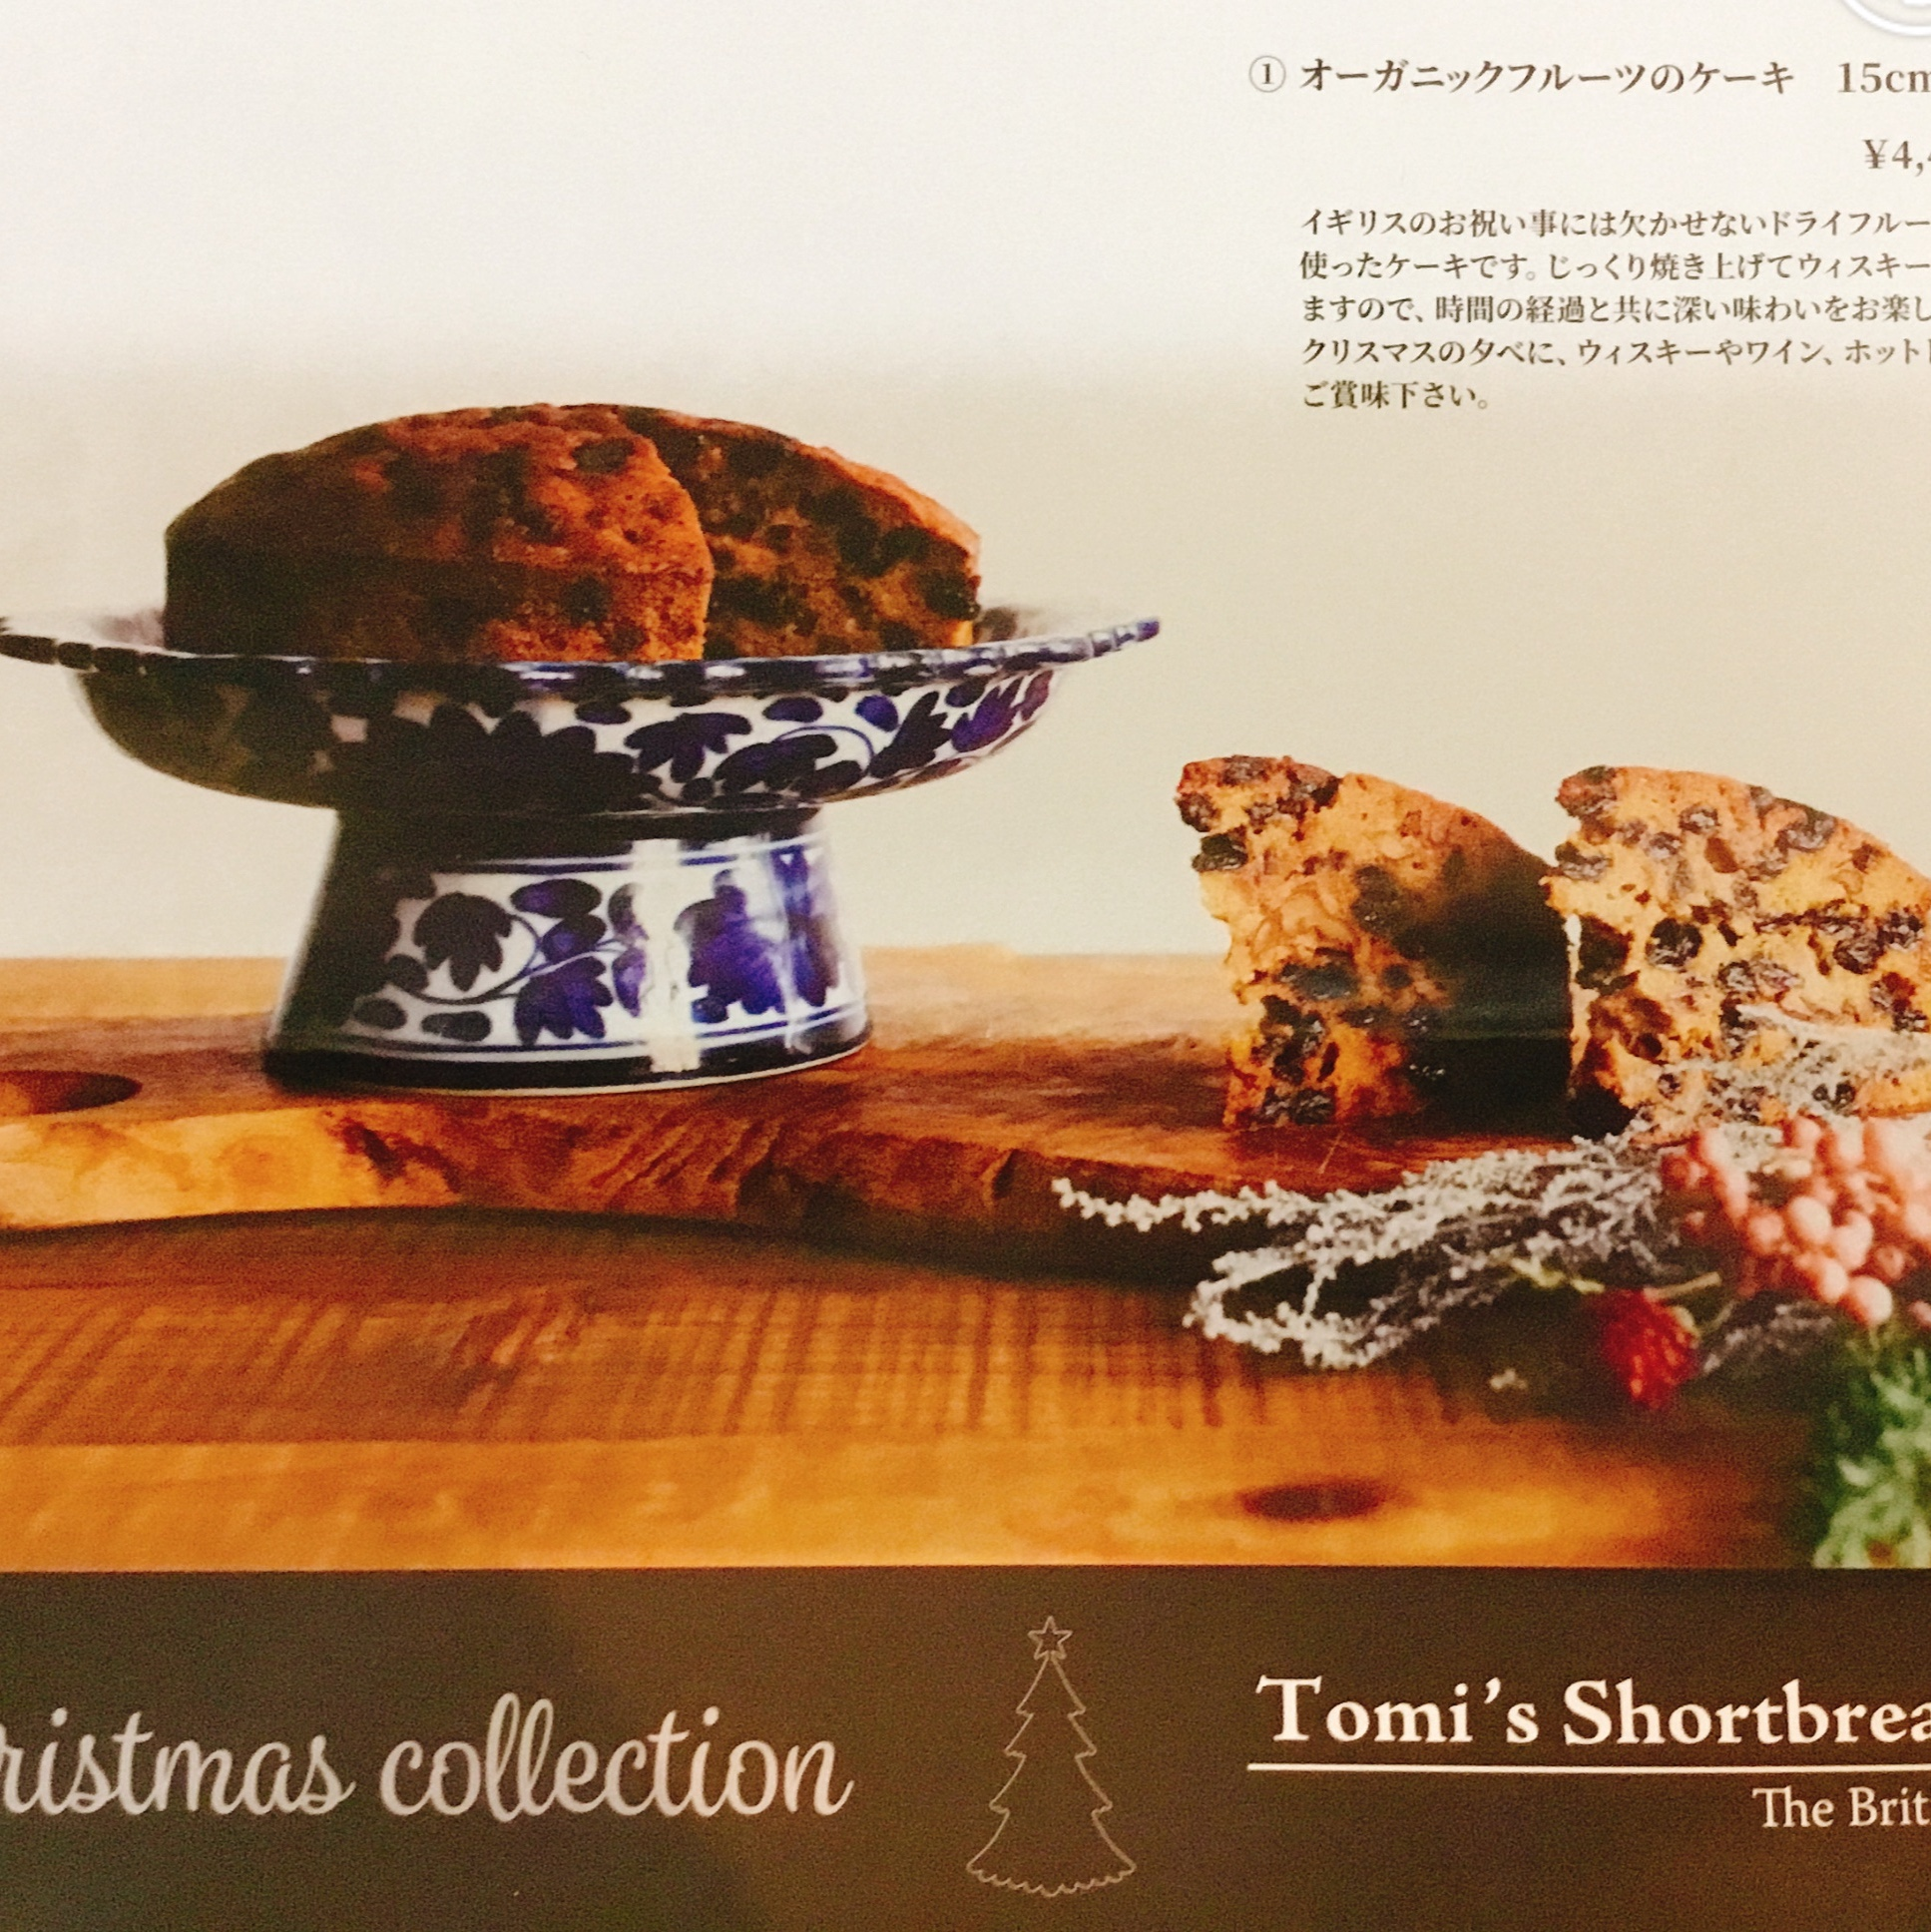 The British PastryShop「トミーズショートブレッドハウス」のChristmas collection